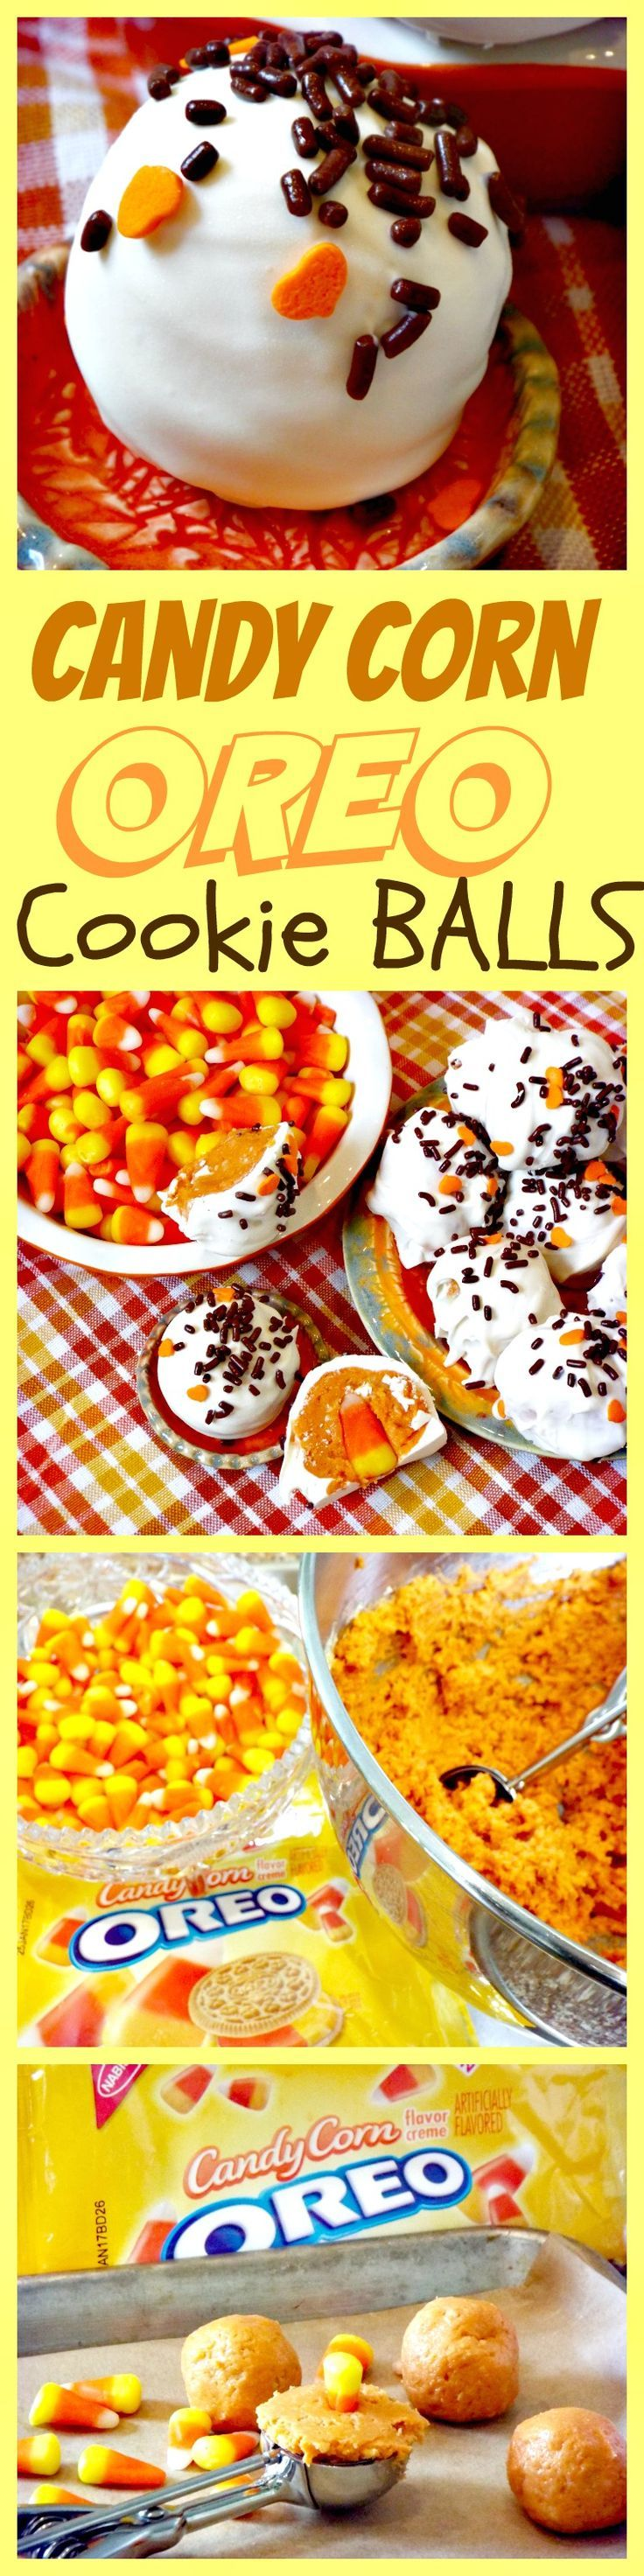 NO BAKE Candy Corn Oreo Cookie Balls are the perfect Halloween treat for the entire family.